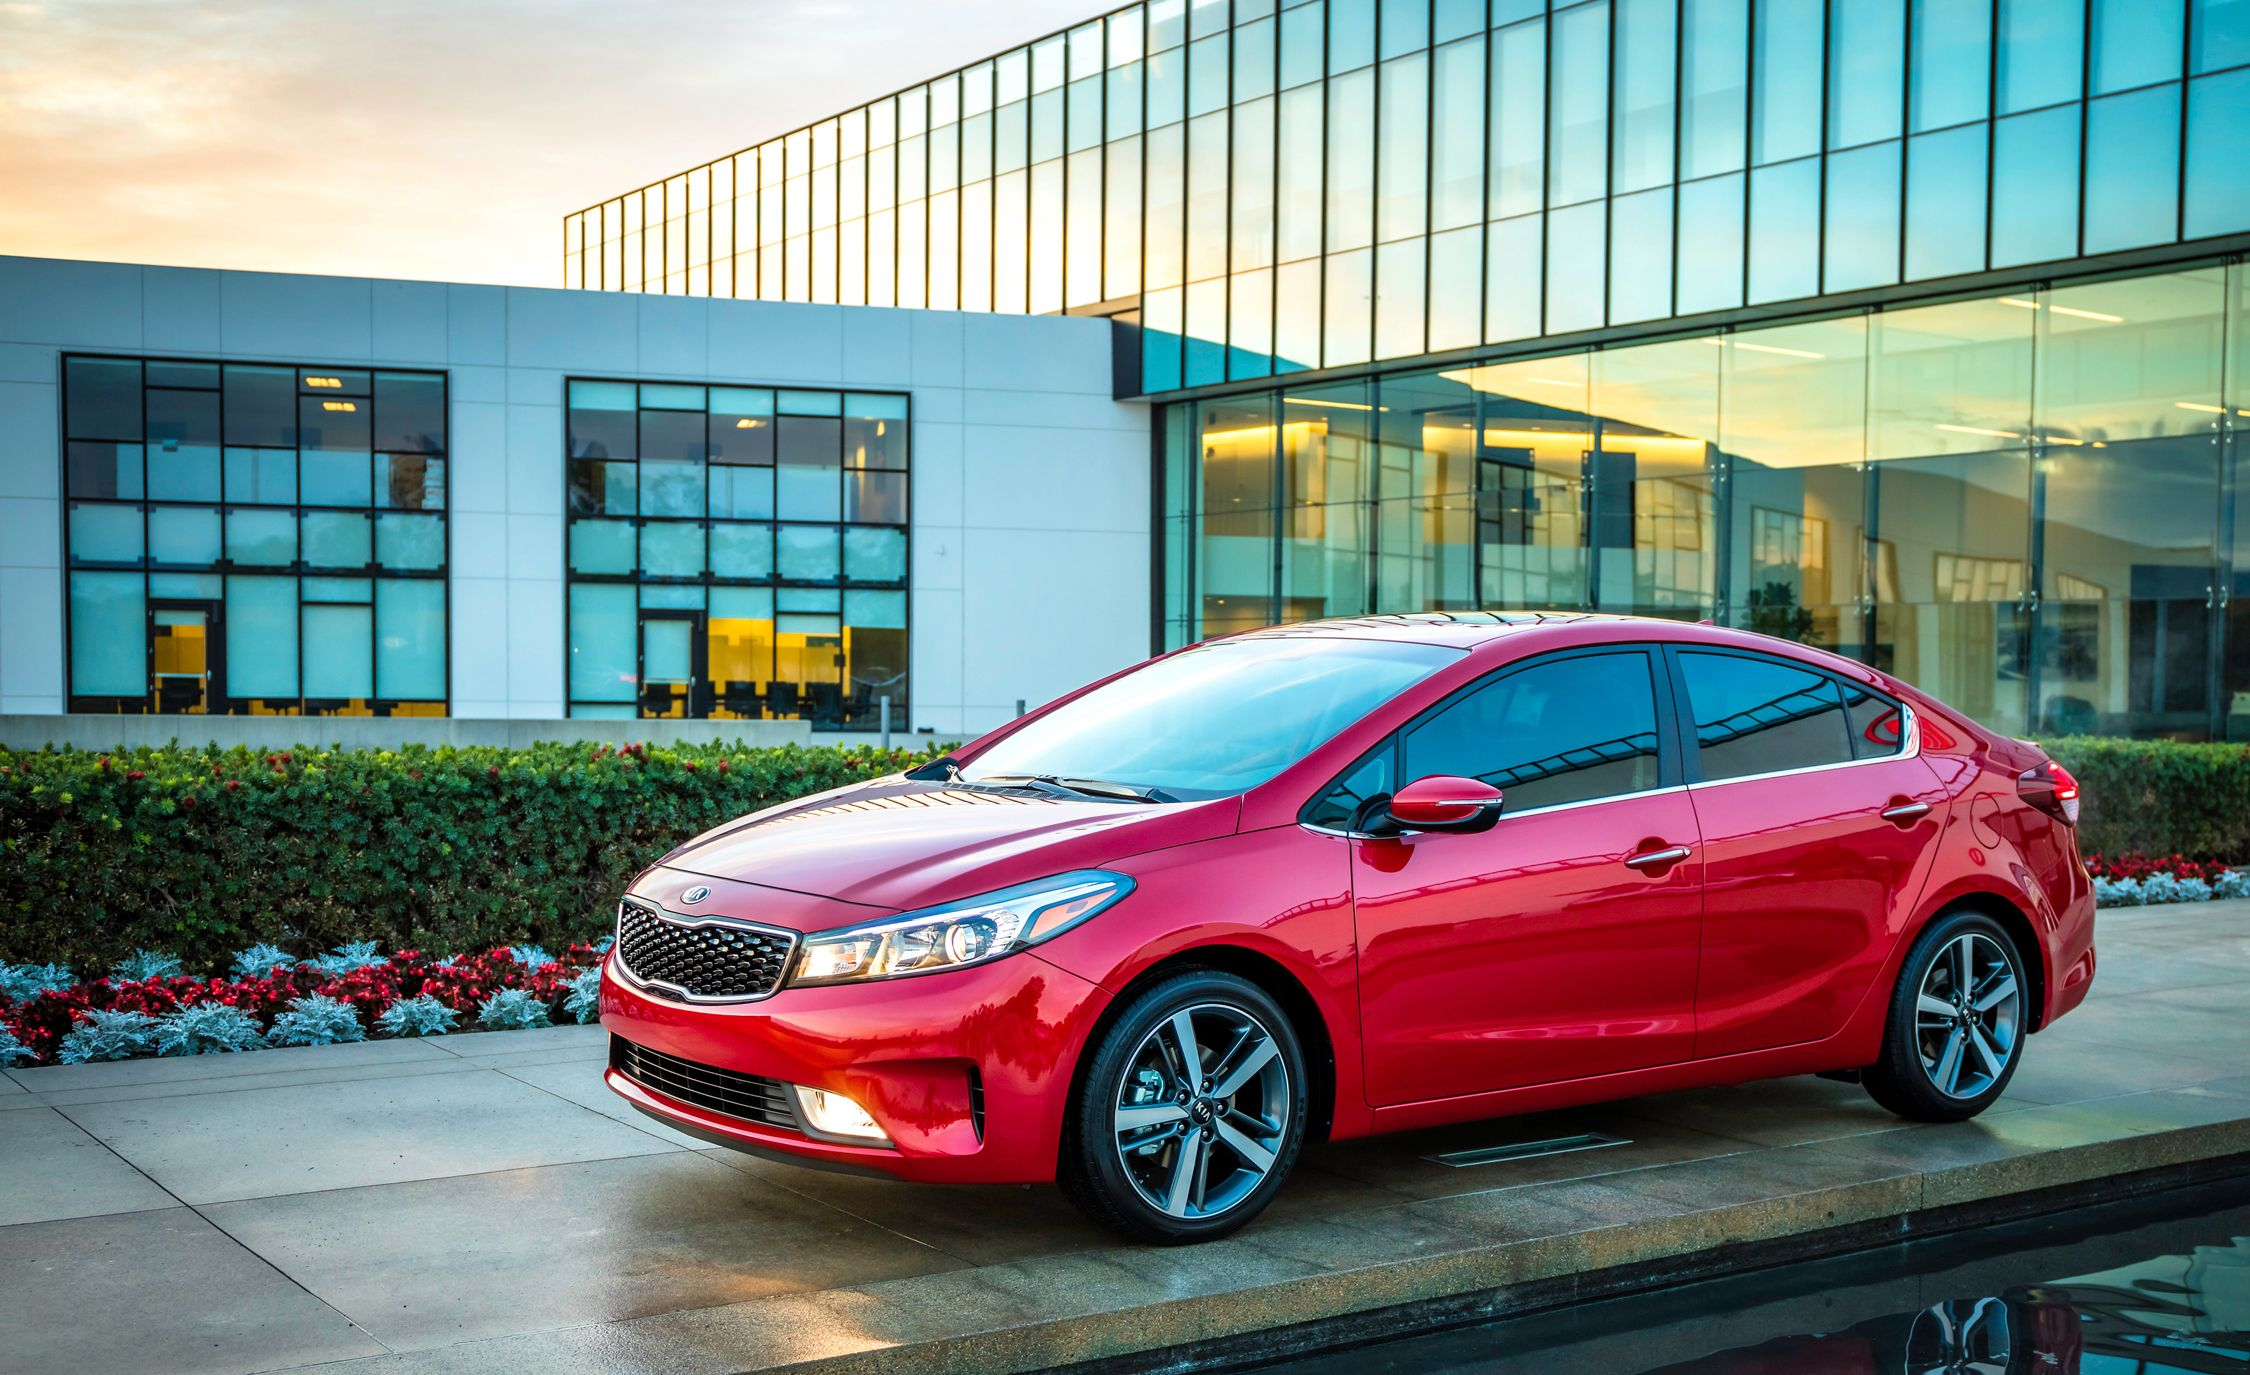 2018 kia forte forte5 exterior design and dimensions review car and driver. Black Bedroom Furniture Sets. Home Design Ideas